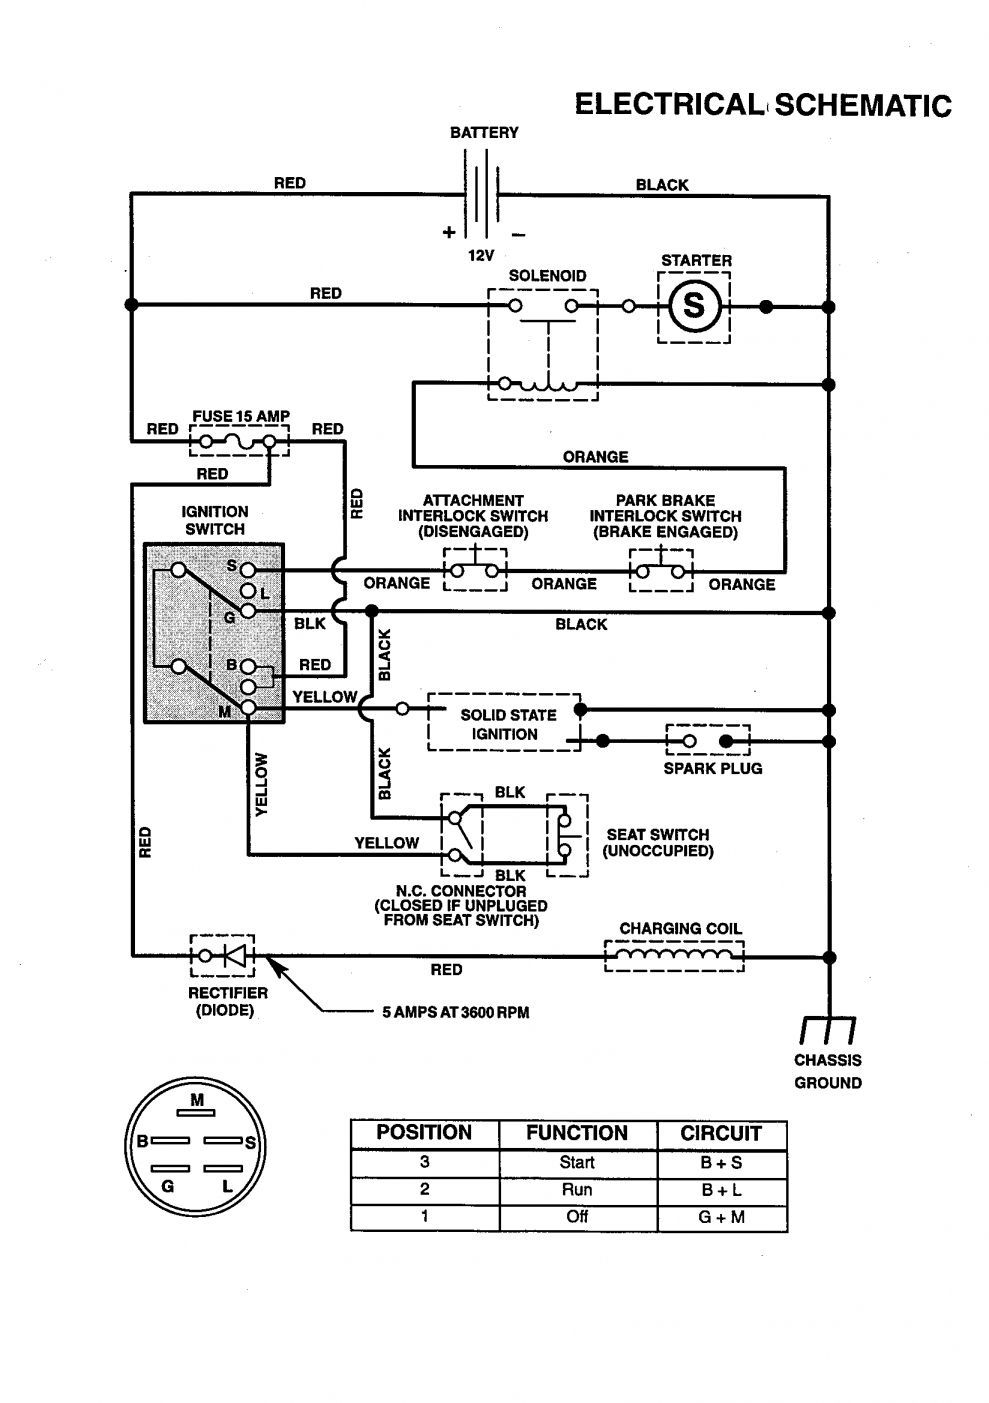 Repair Engine 15 Small Engine Repair Ignition Switch Wiring Diagram Engine Diagram Wiringg Net In 2020 Electrical Diagram Small Engine Engine Repair